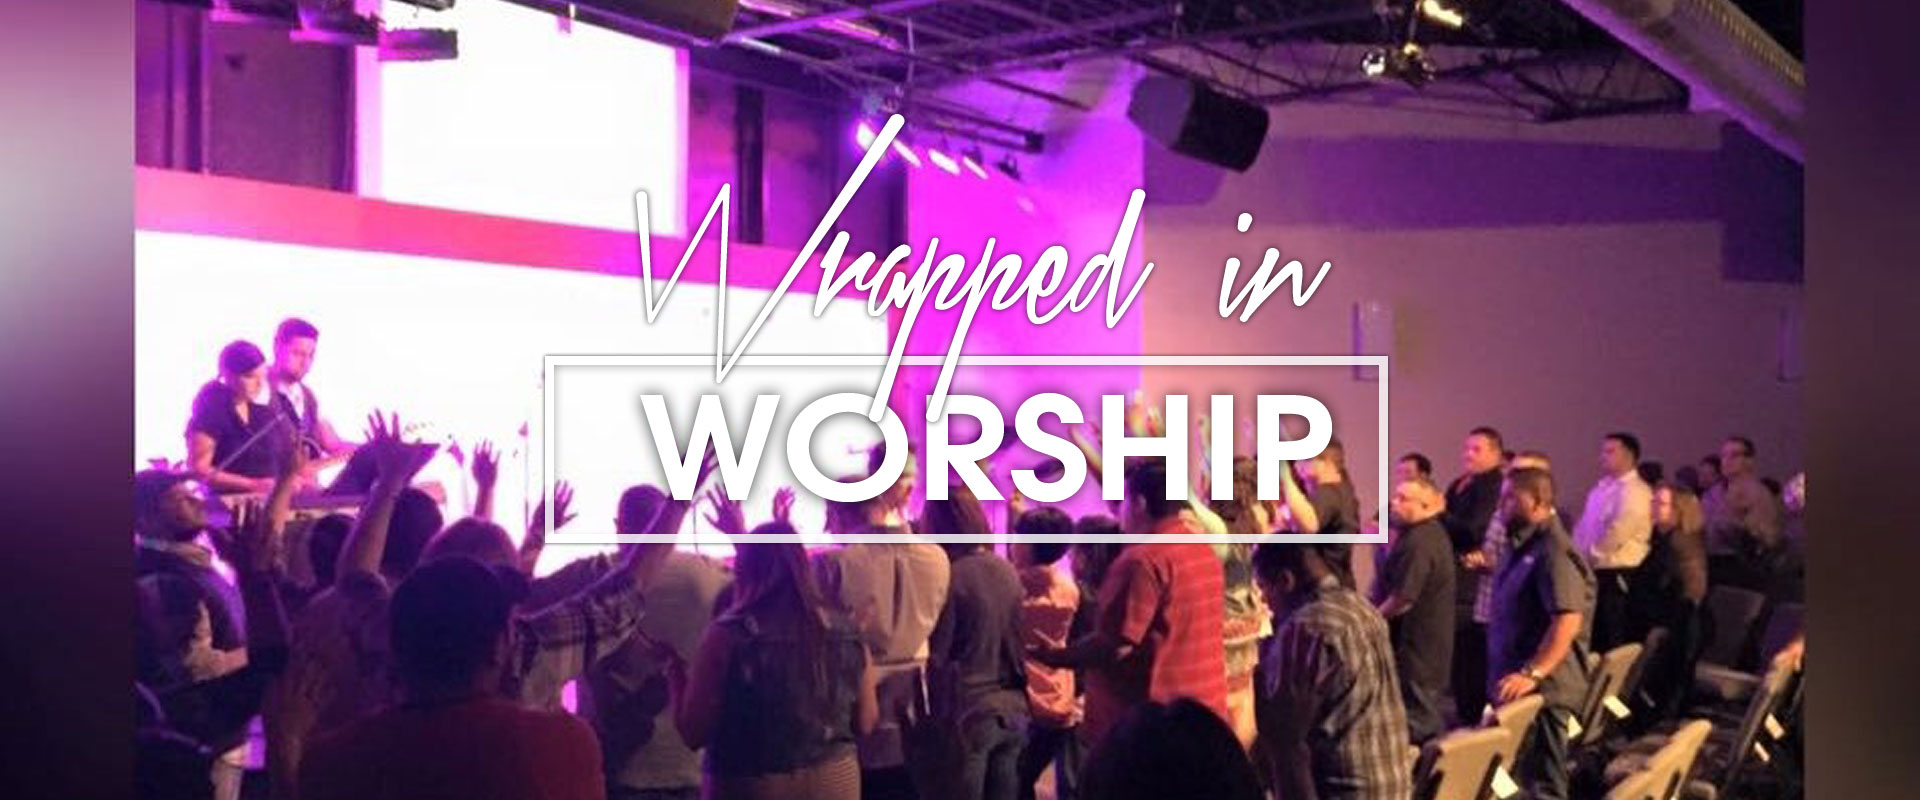 Wrapped-in-Worship-2016